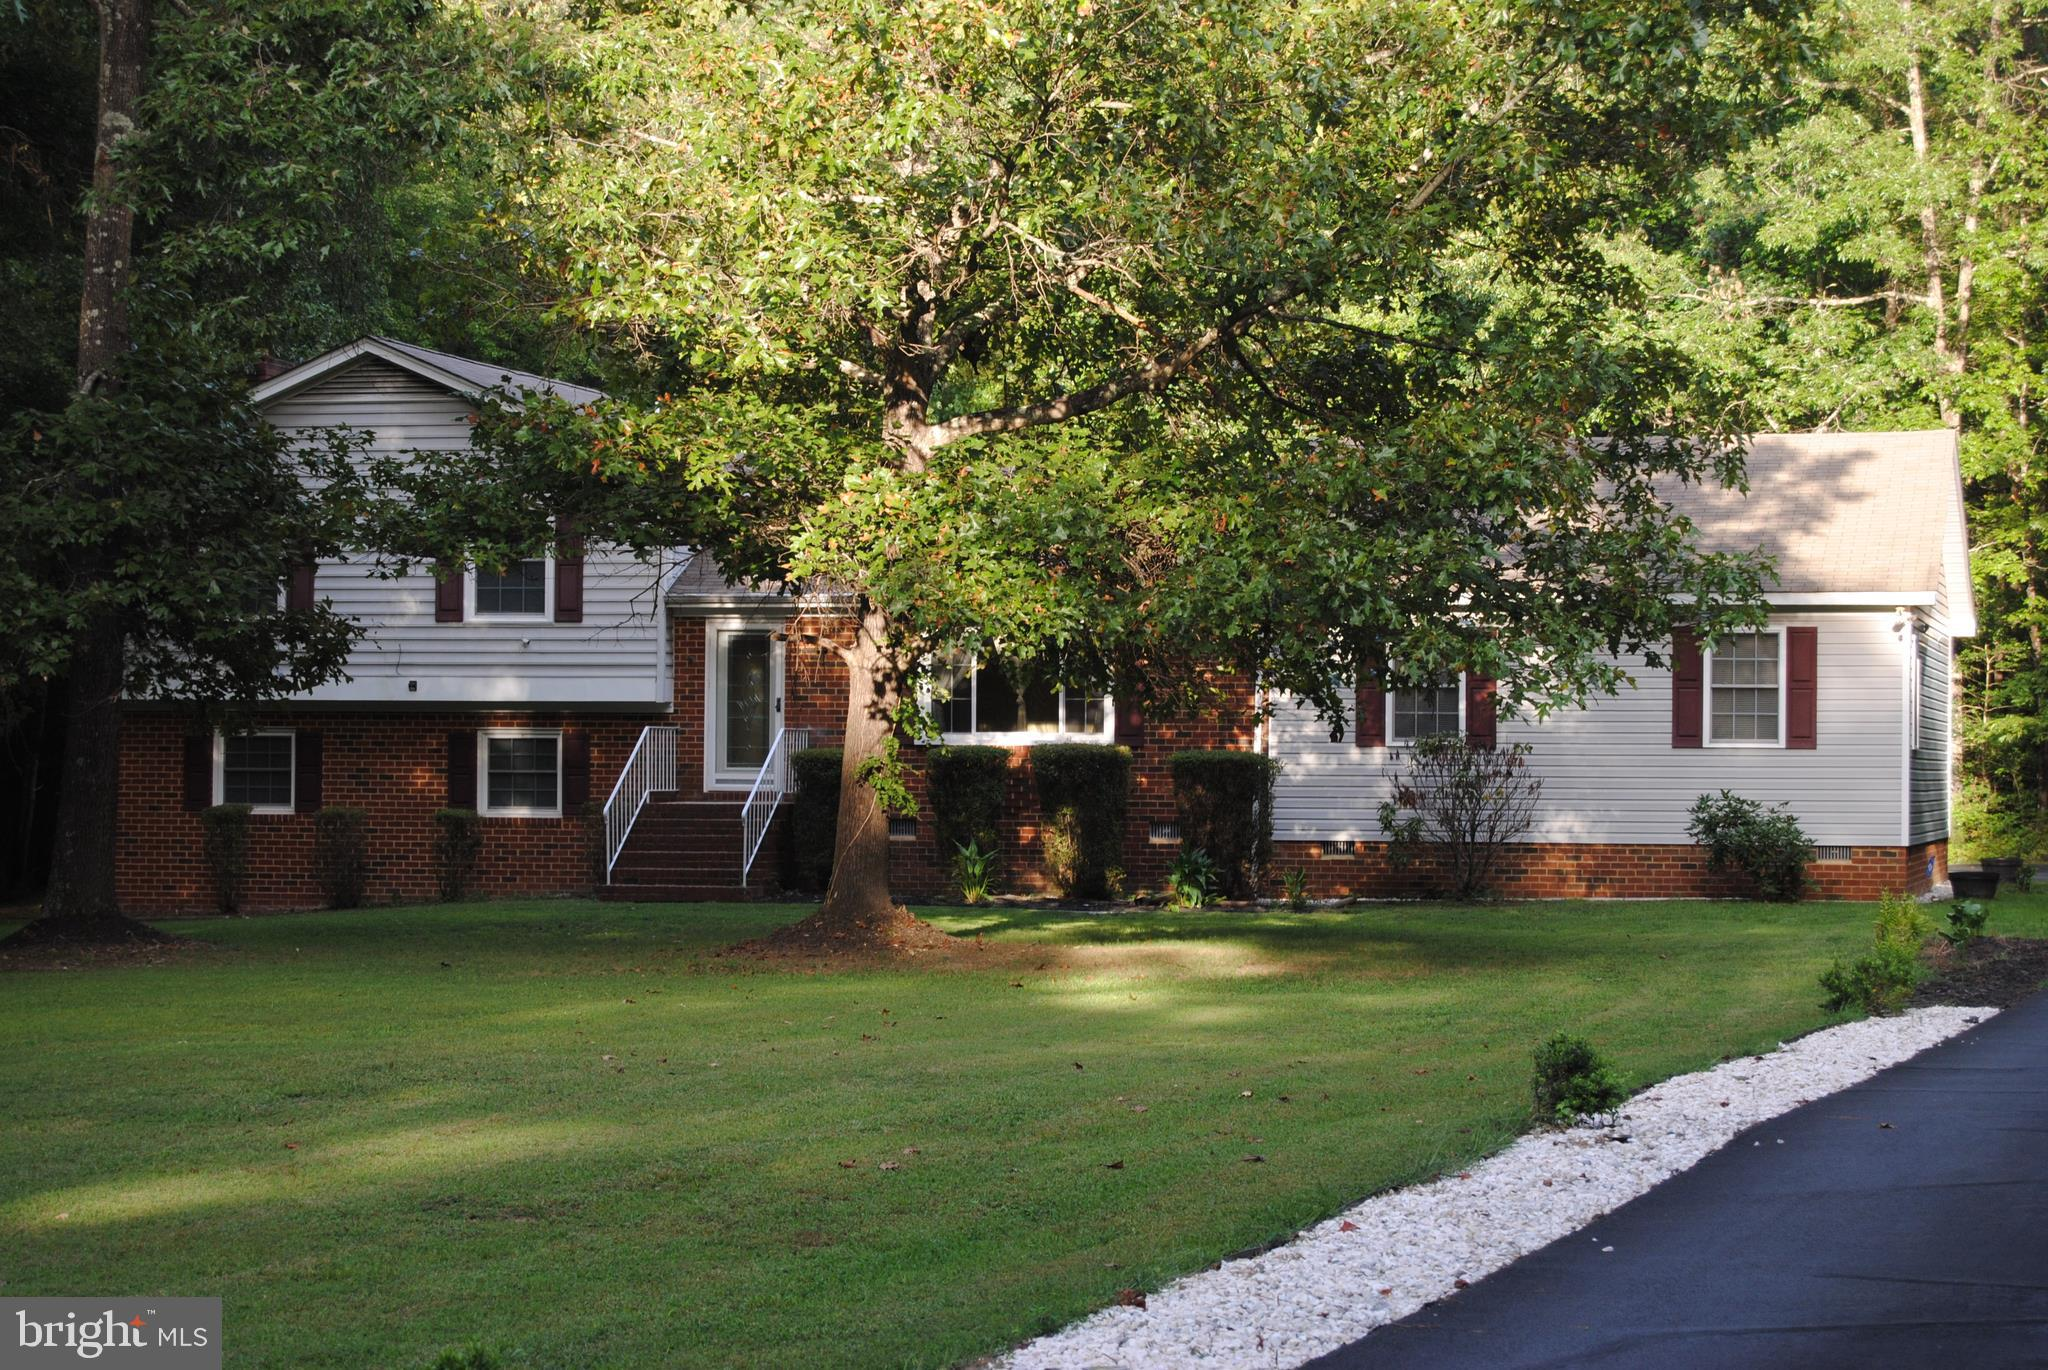 19466 COURTNEY ROAD, HANOVER, VA 23069